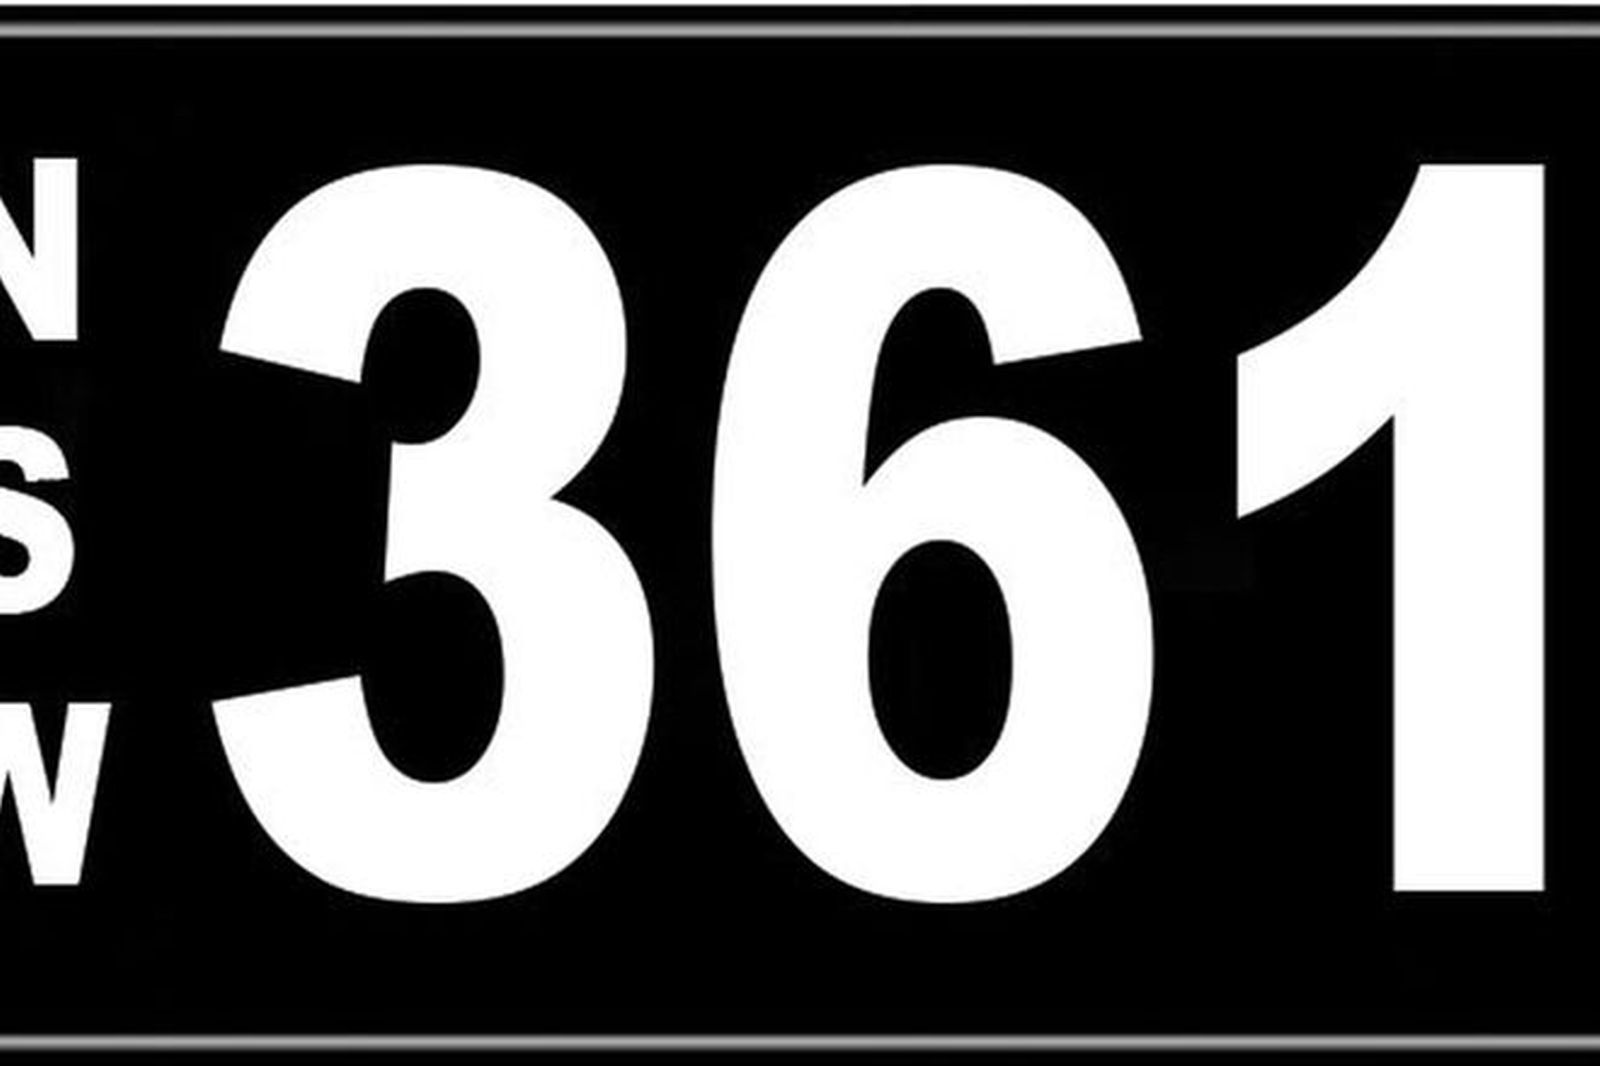 Number Plate - NSW Numerical Number Plate '361'